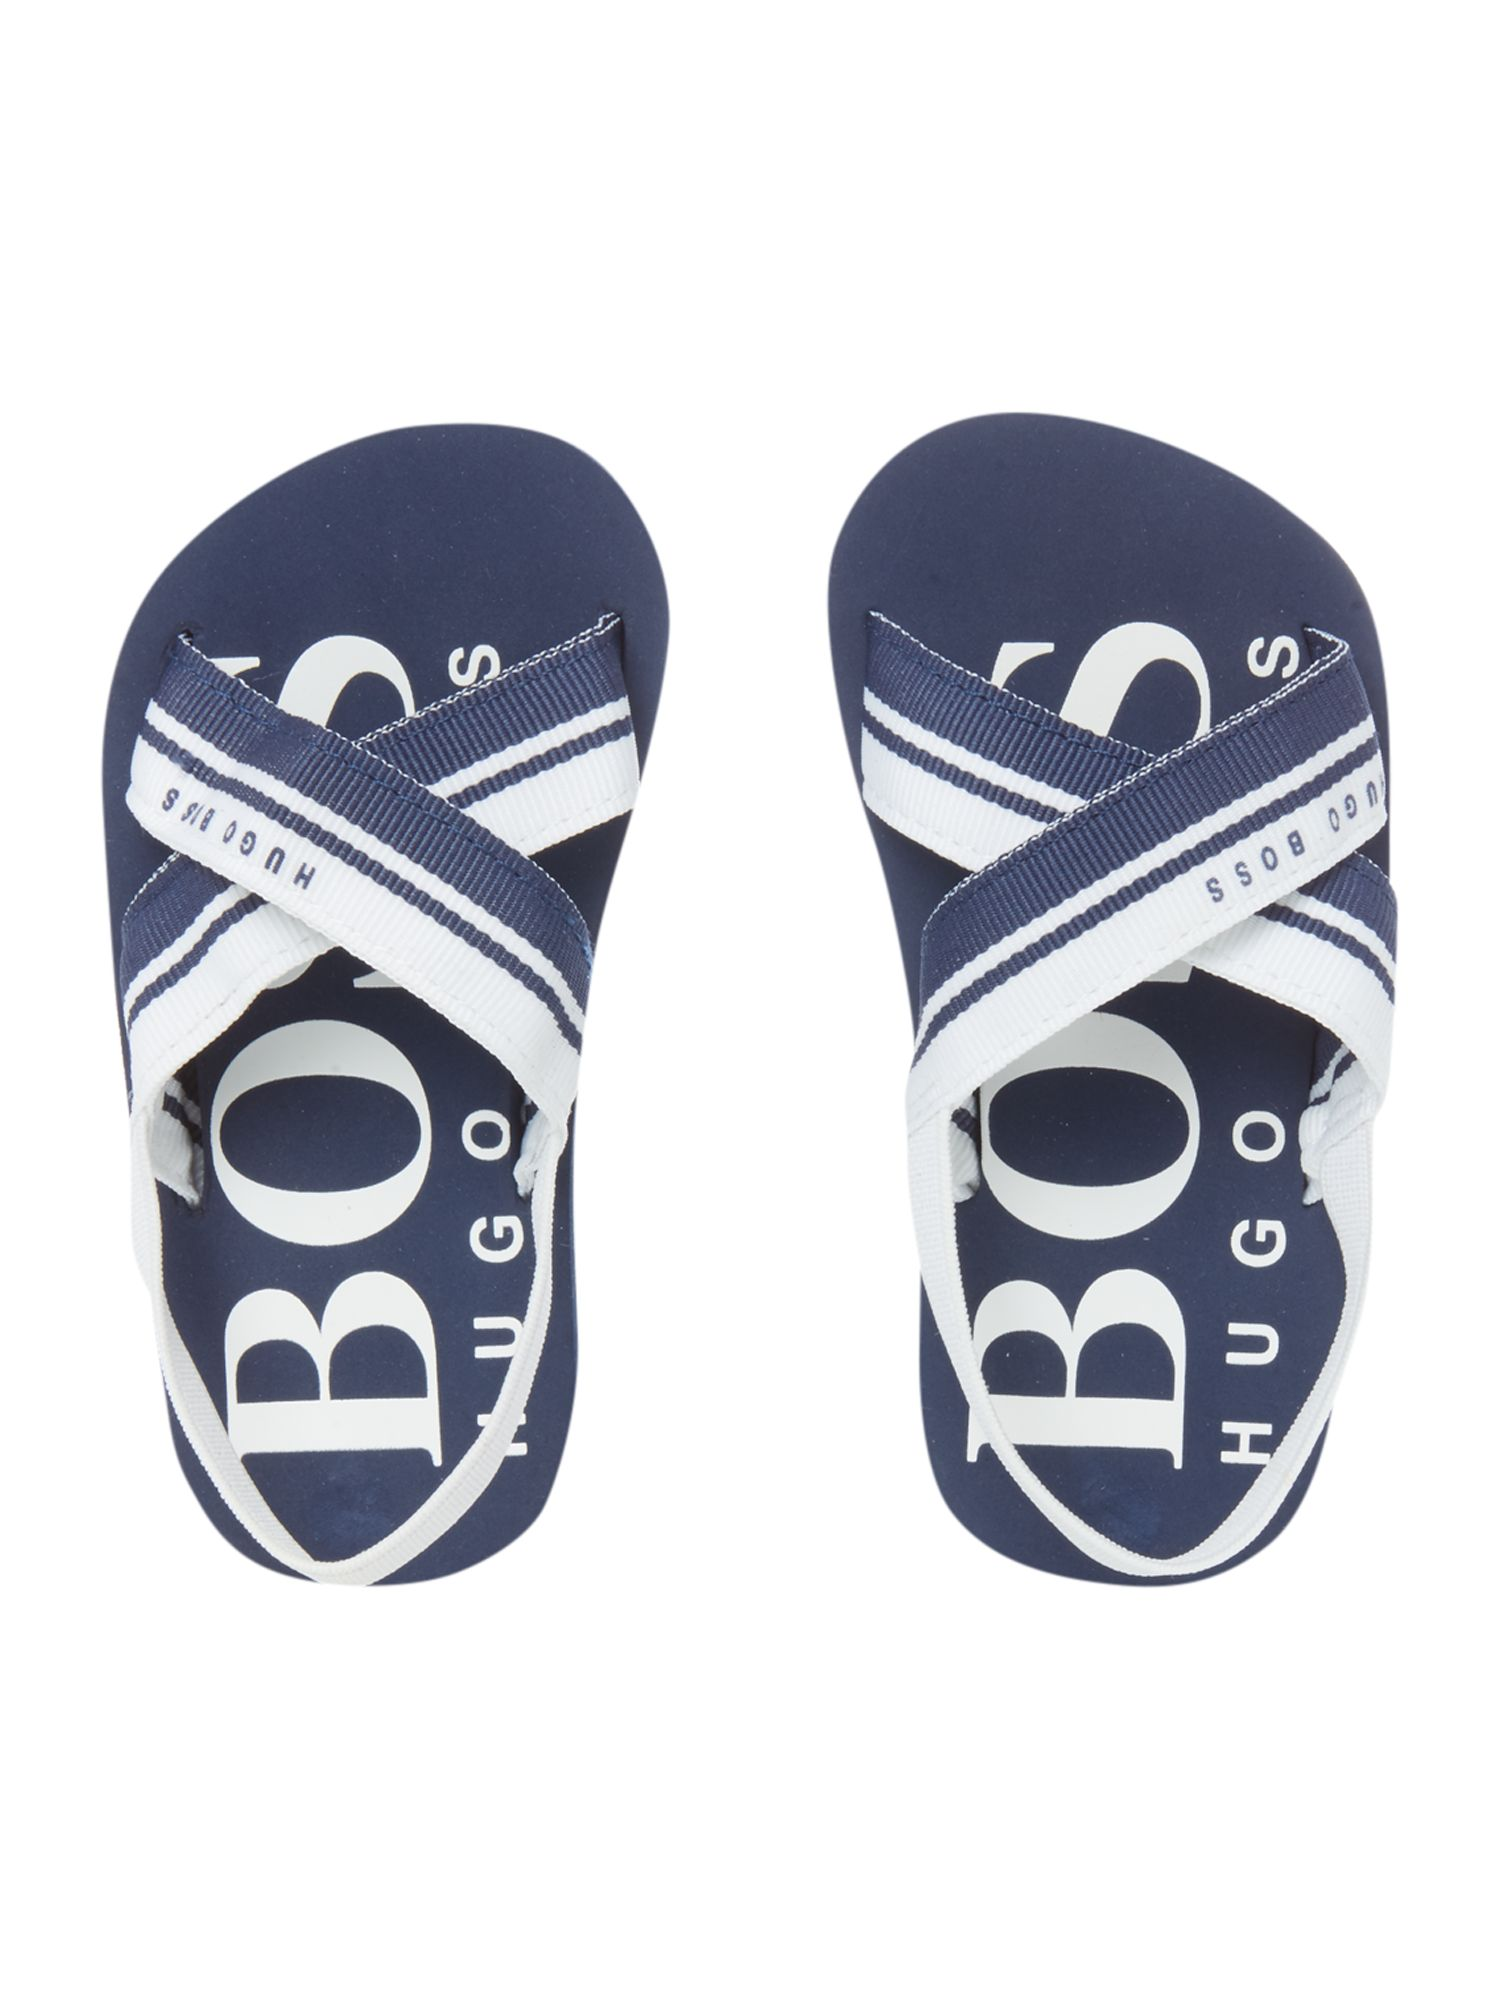 Buy hugo boss flip flops for How to buy a house to flip